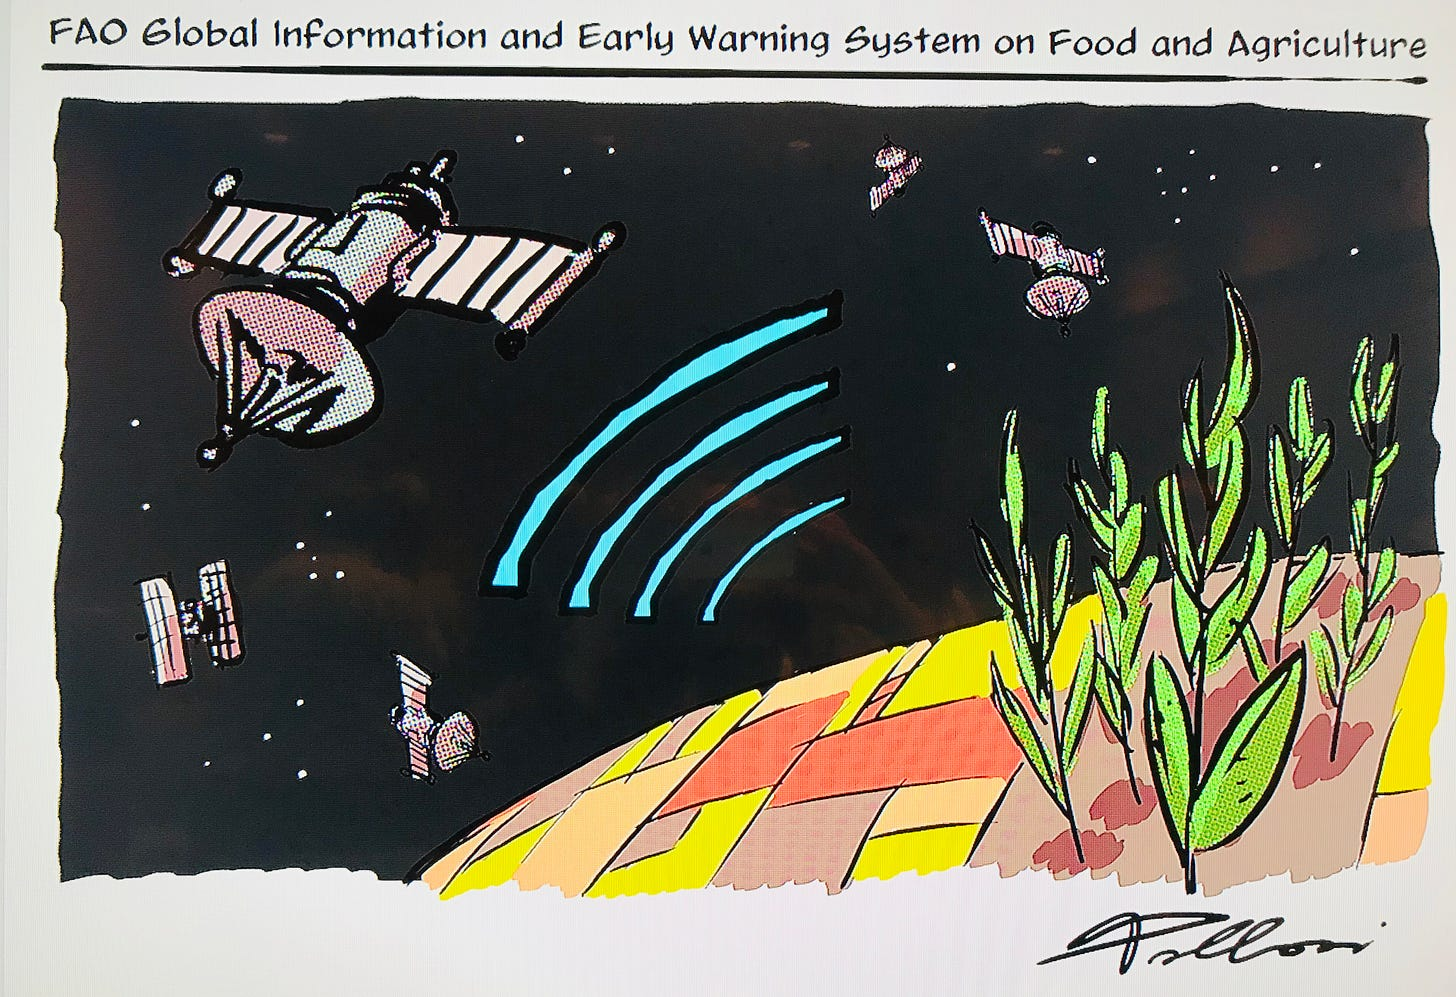 Graphic visualization of satellites monitoring crop conditions